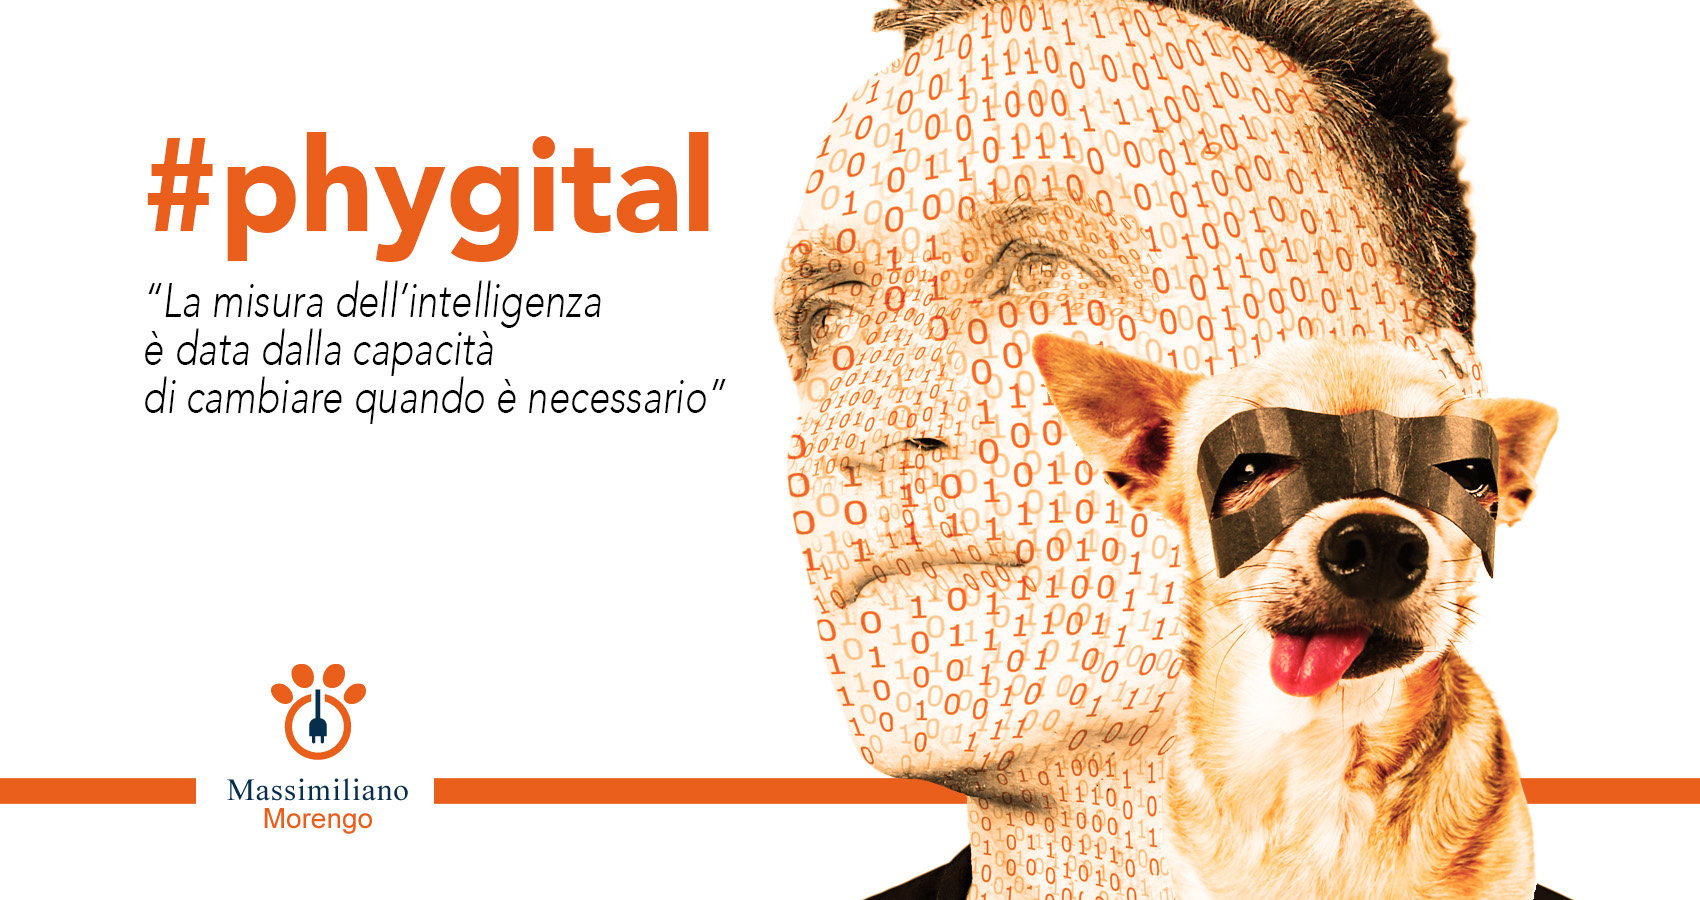 Pet Phygital Marketing - Massimiliano Morengo